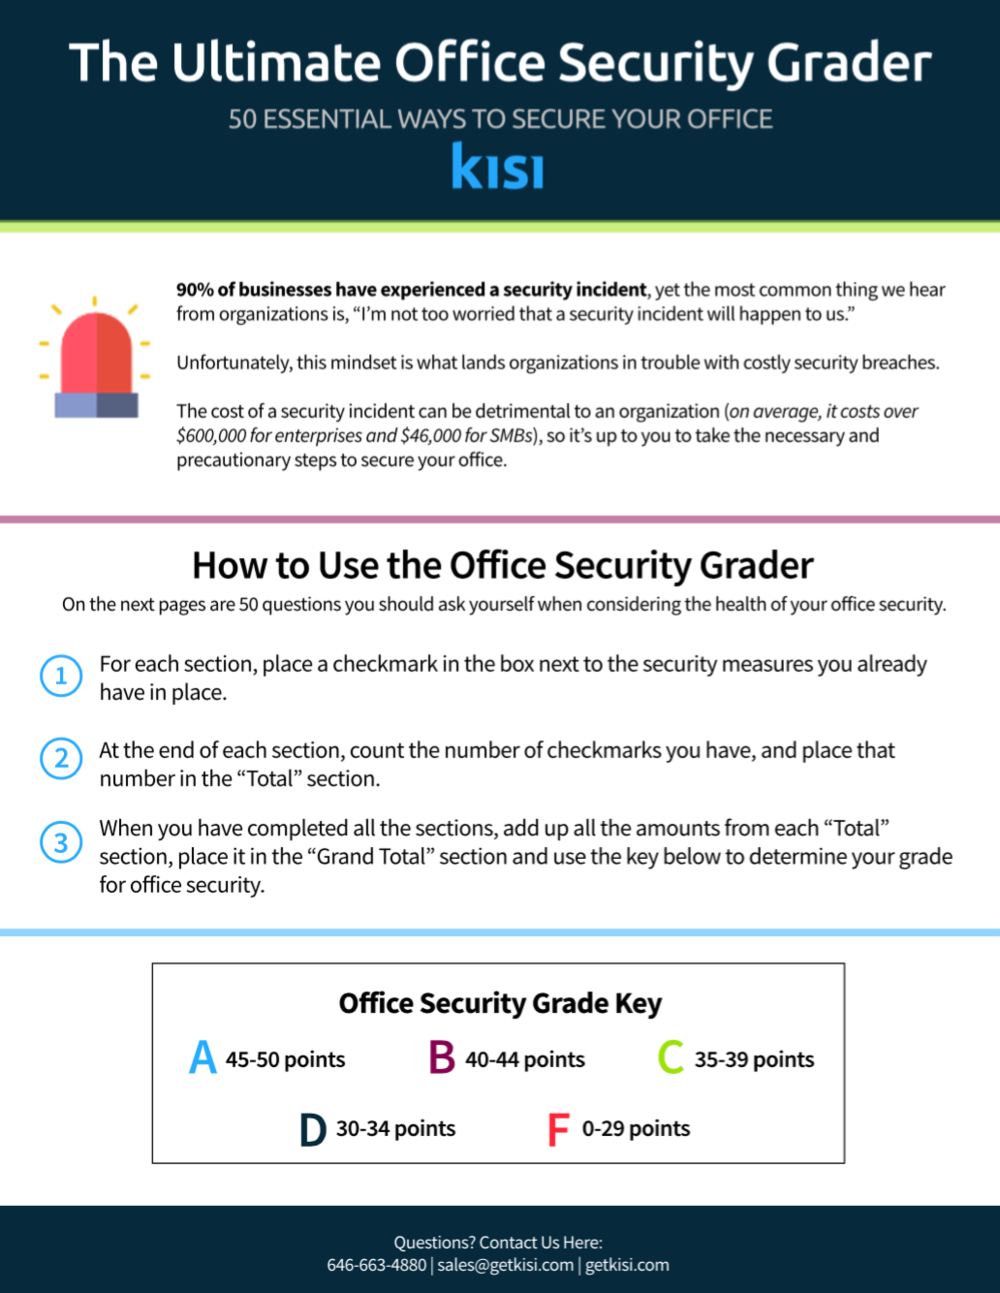 Office Security Grader Cover Sheet.png